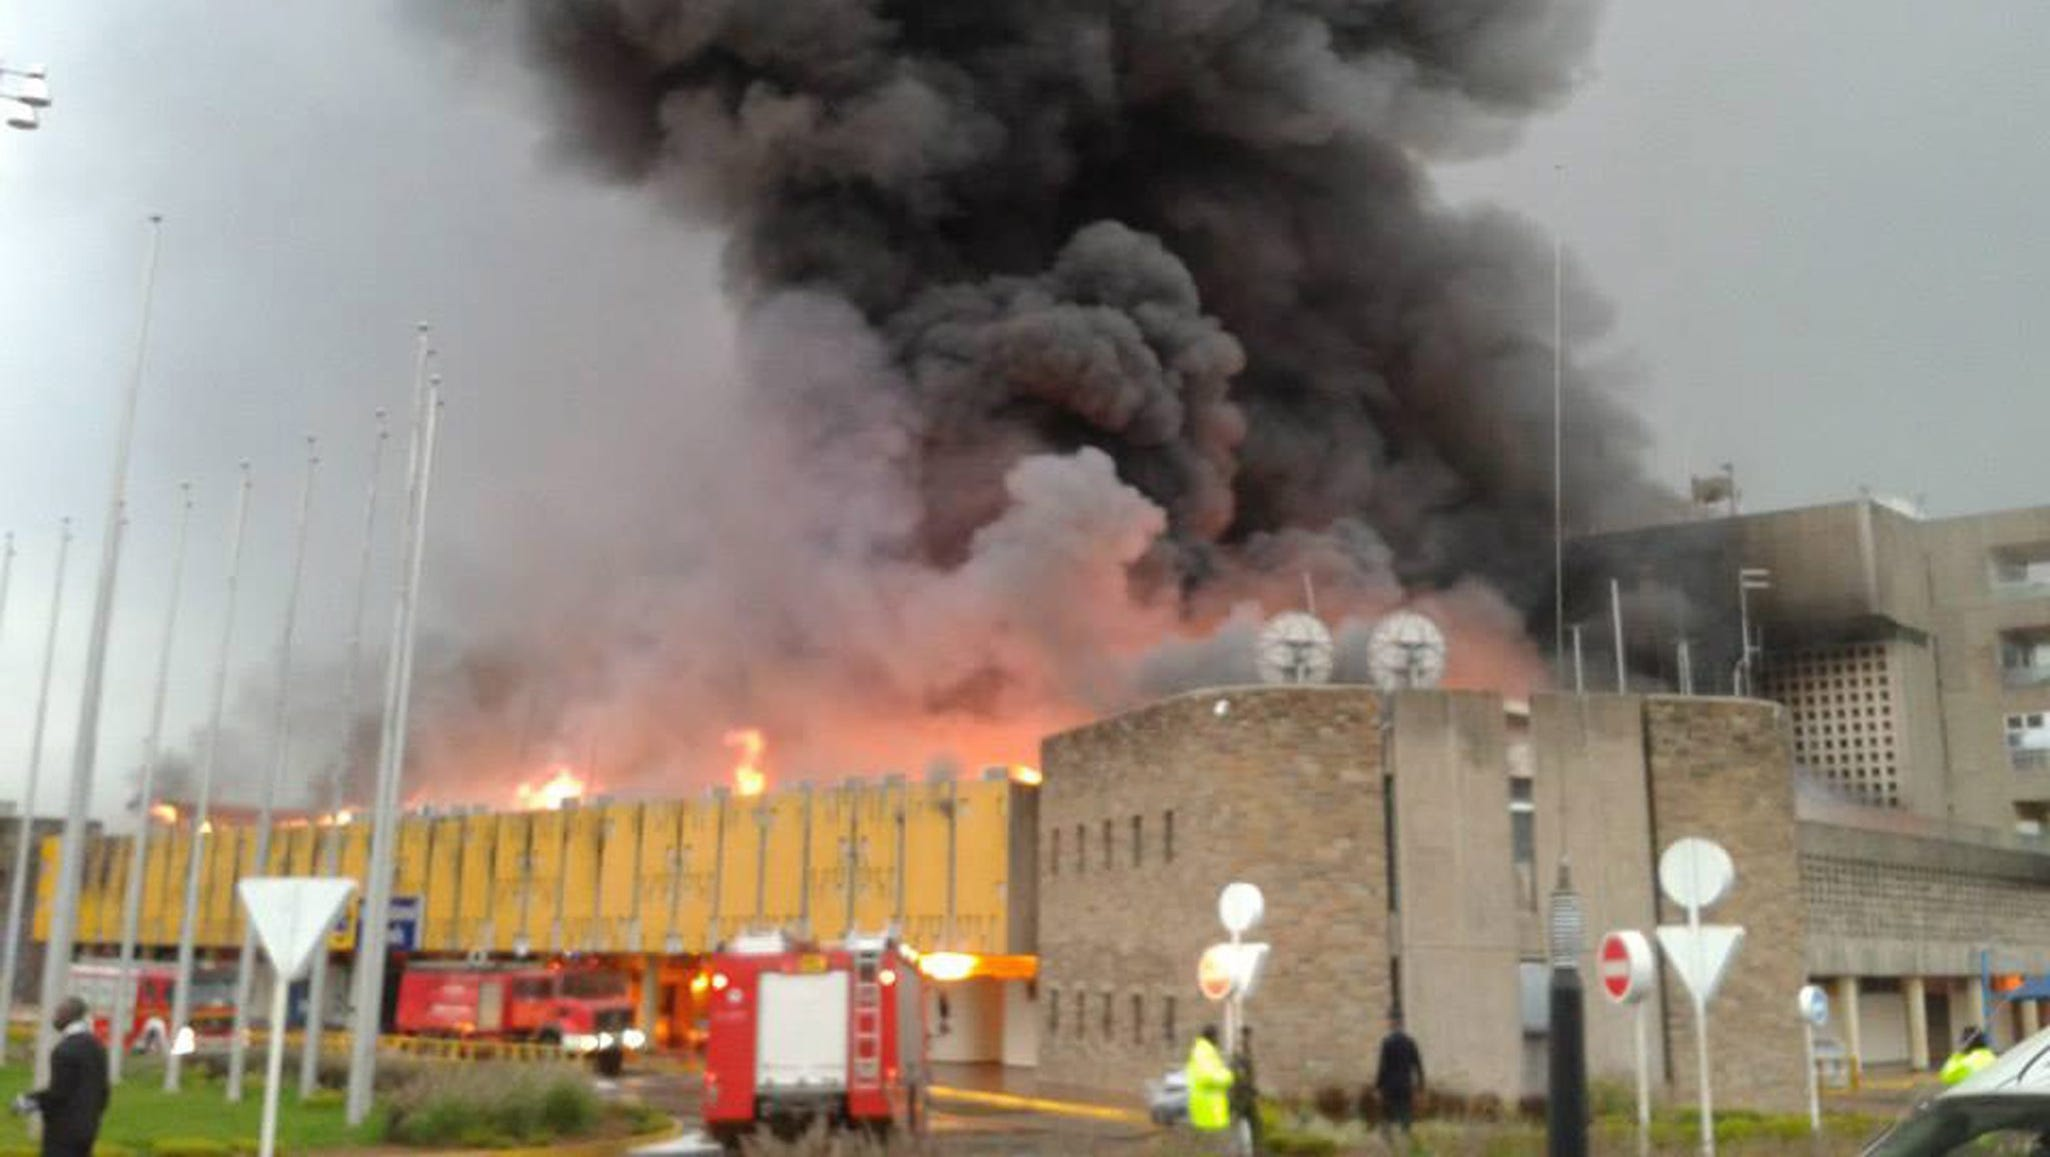 Firefighters battle a huge blaze at the Jomo Kenyatta International Airport on Aug. 7 in Nairobi, Kenya. An early morning fire engulfed the arrival hall,forcing the closure of East Africa's largest airport.